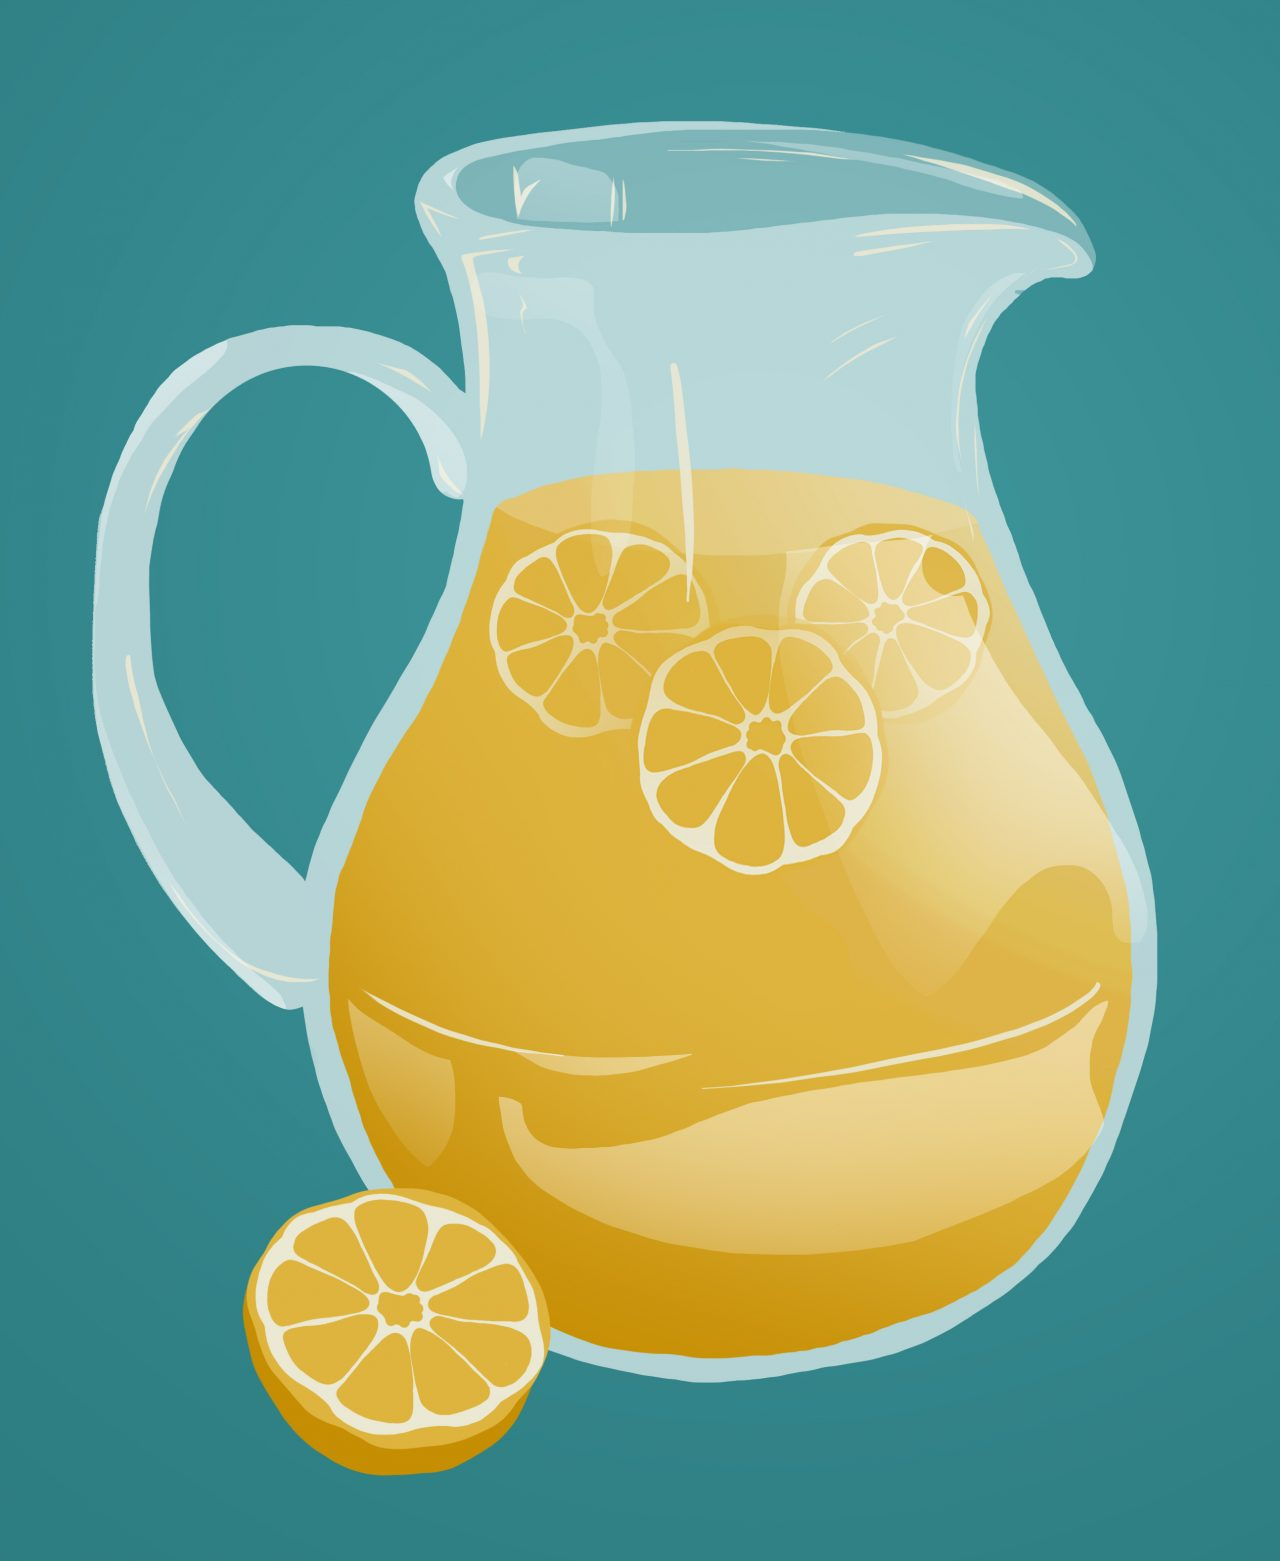 a jug of lemonade Photo credit: Andrea Nebhut